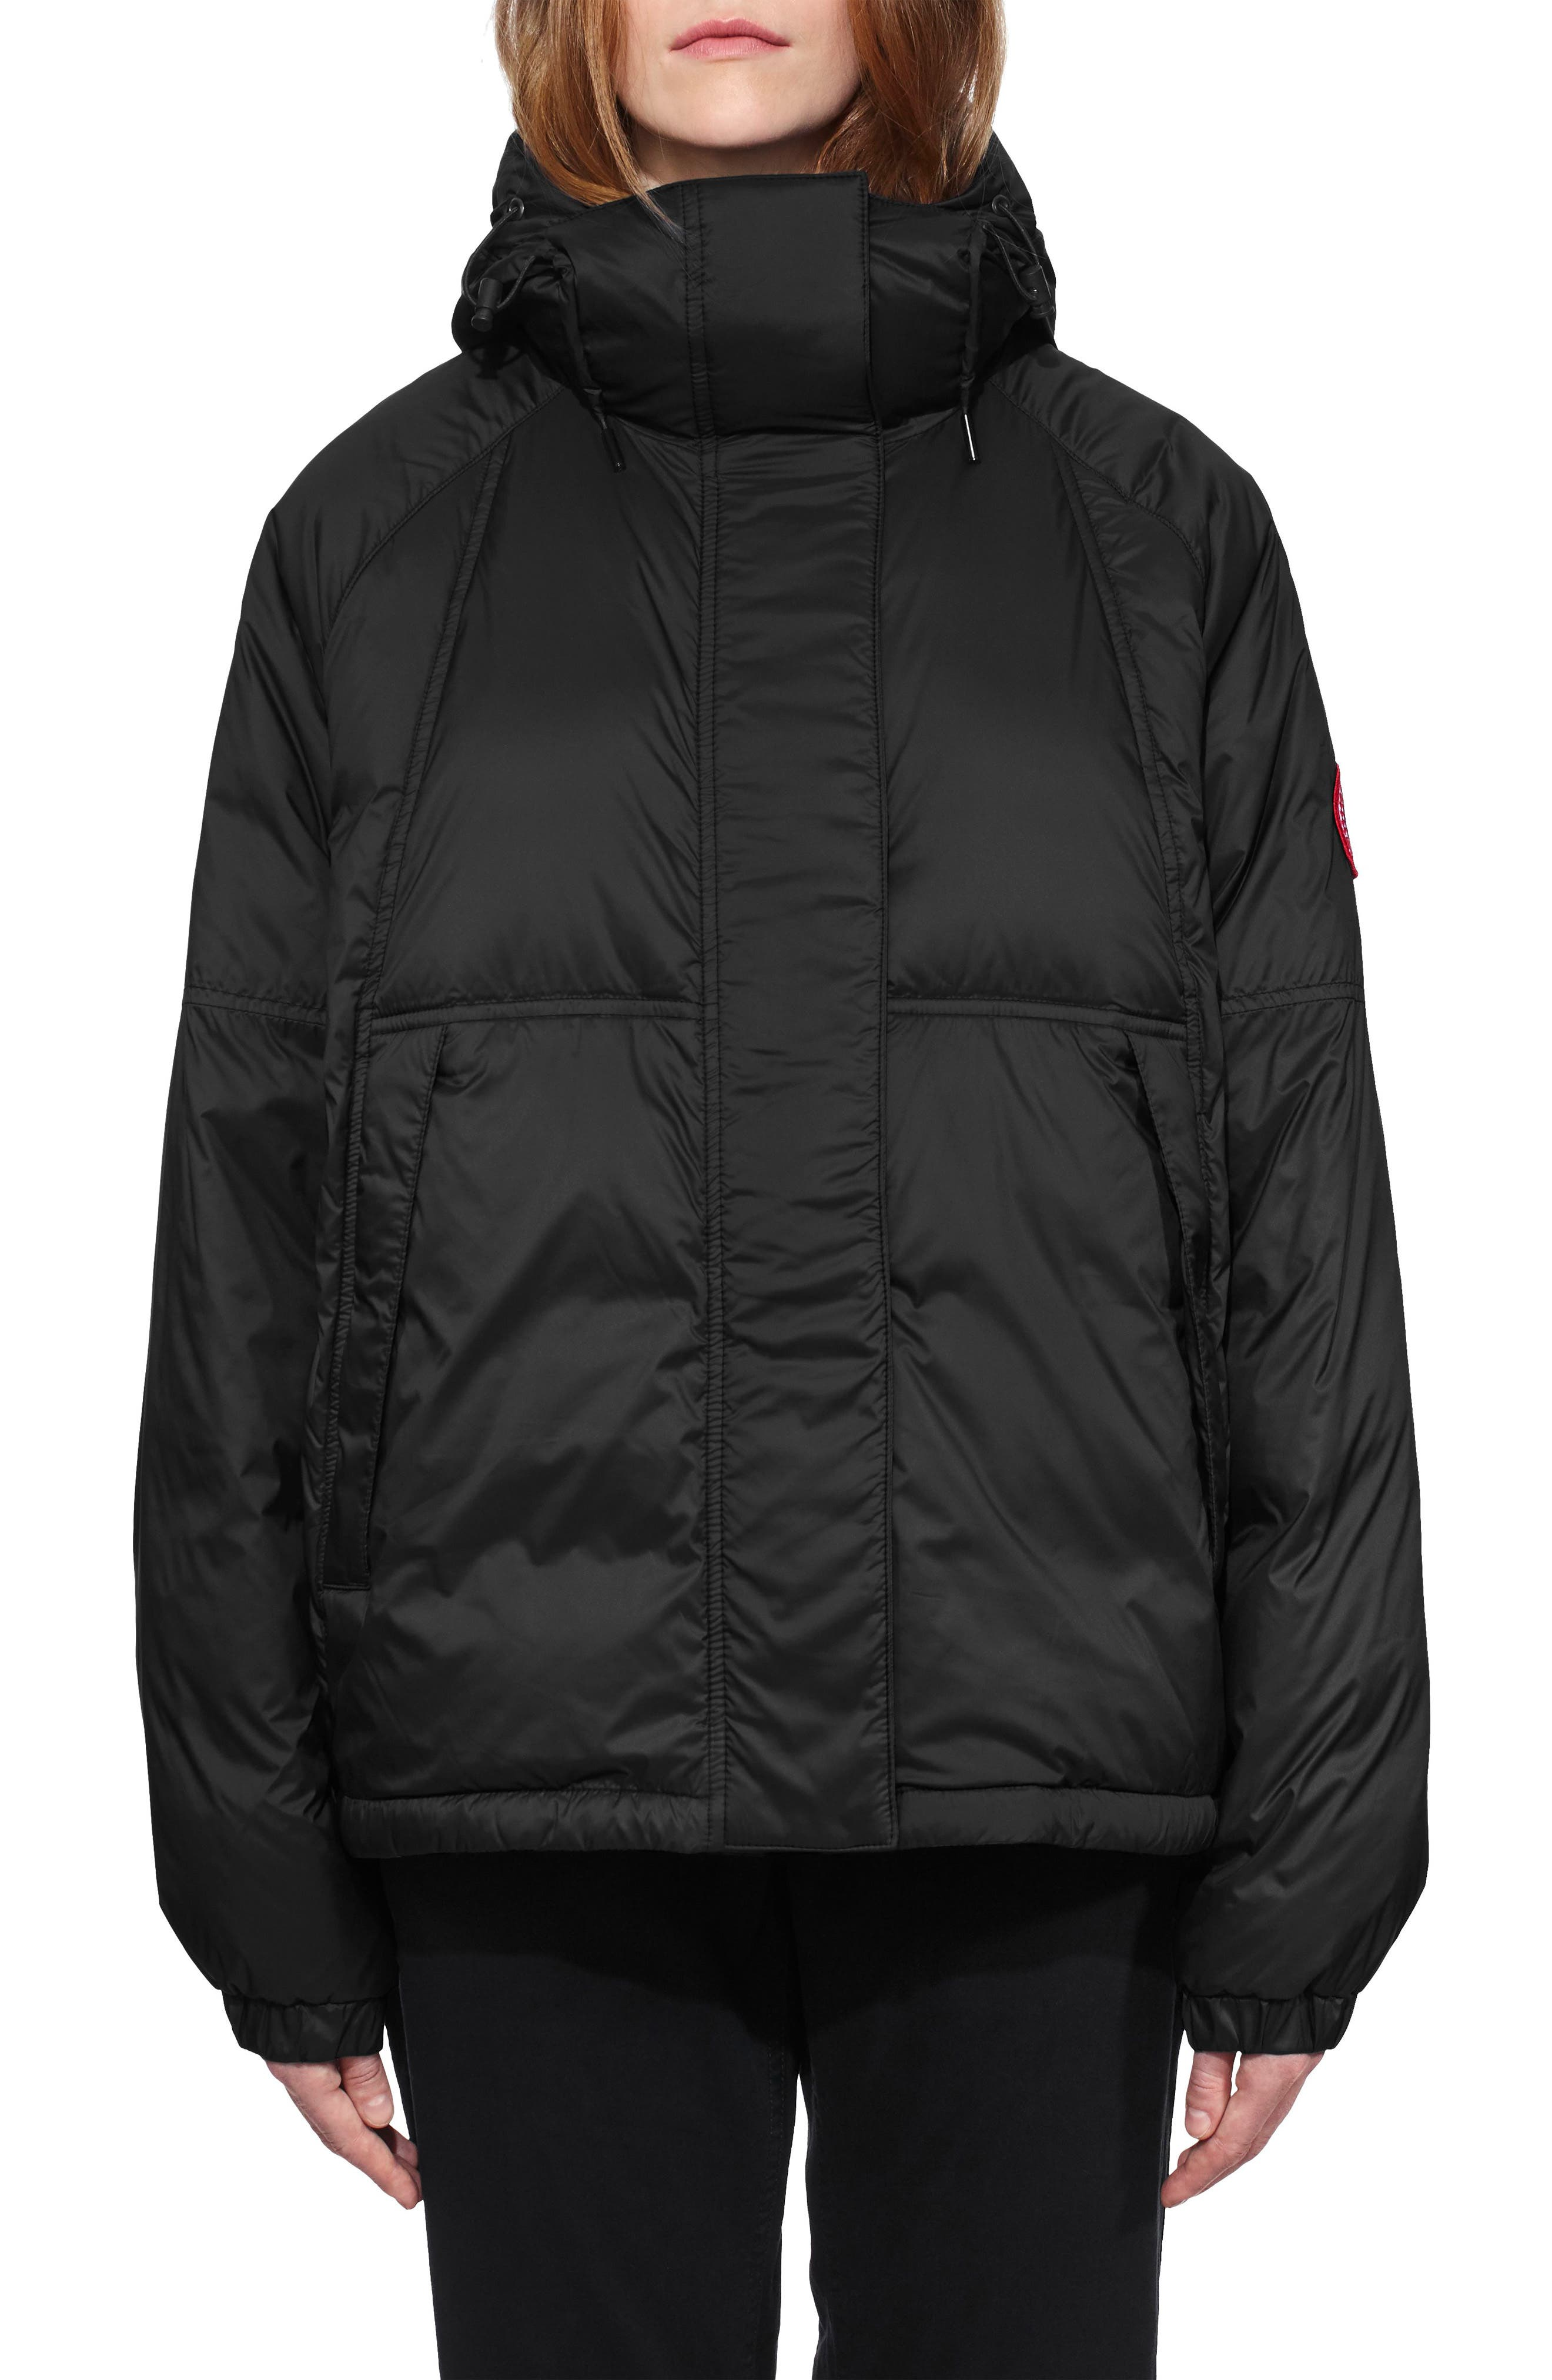 Campden Water Resistant Hooded Down Jacket,                             Main thumbnail 1, color,                             Black